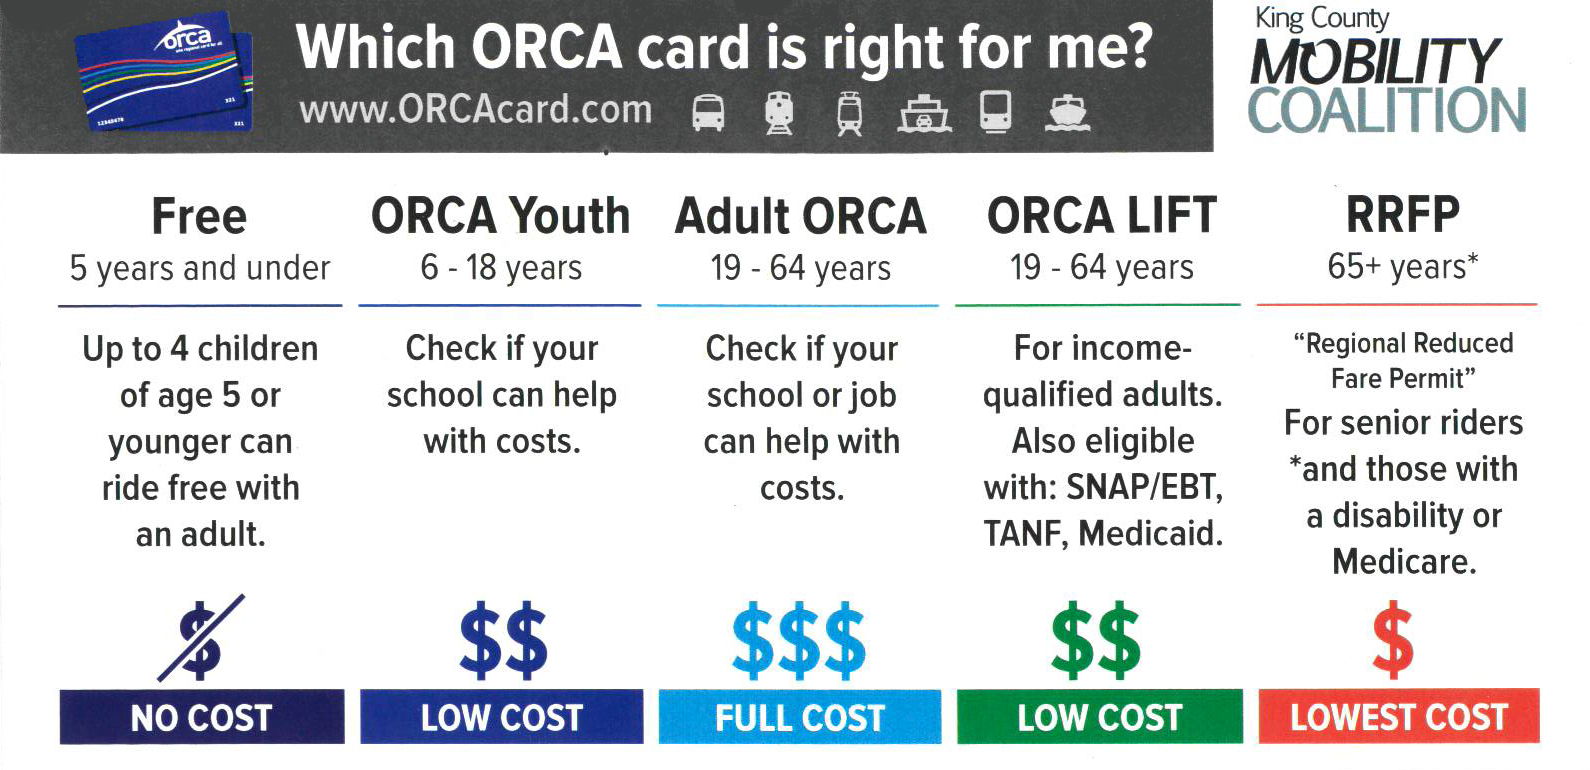 comparison of ORCA cards by age and income